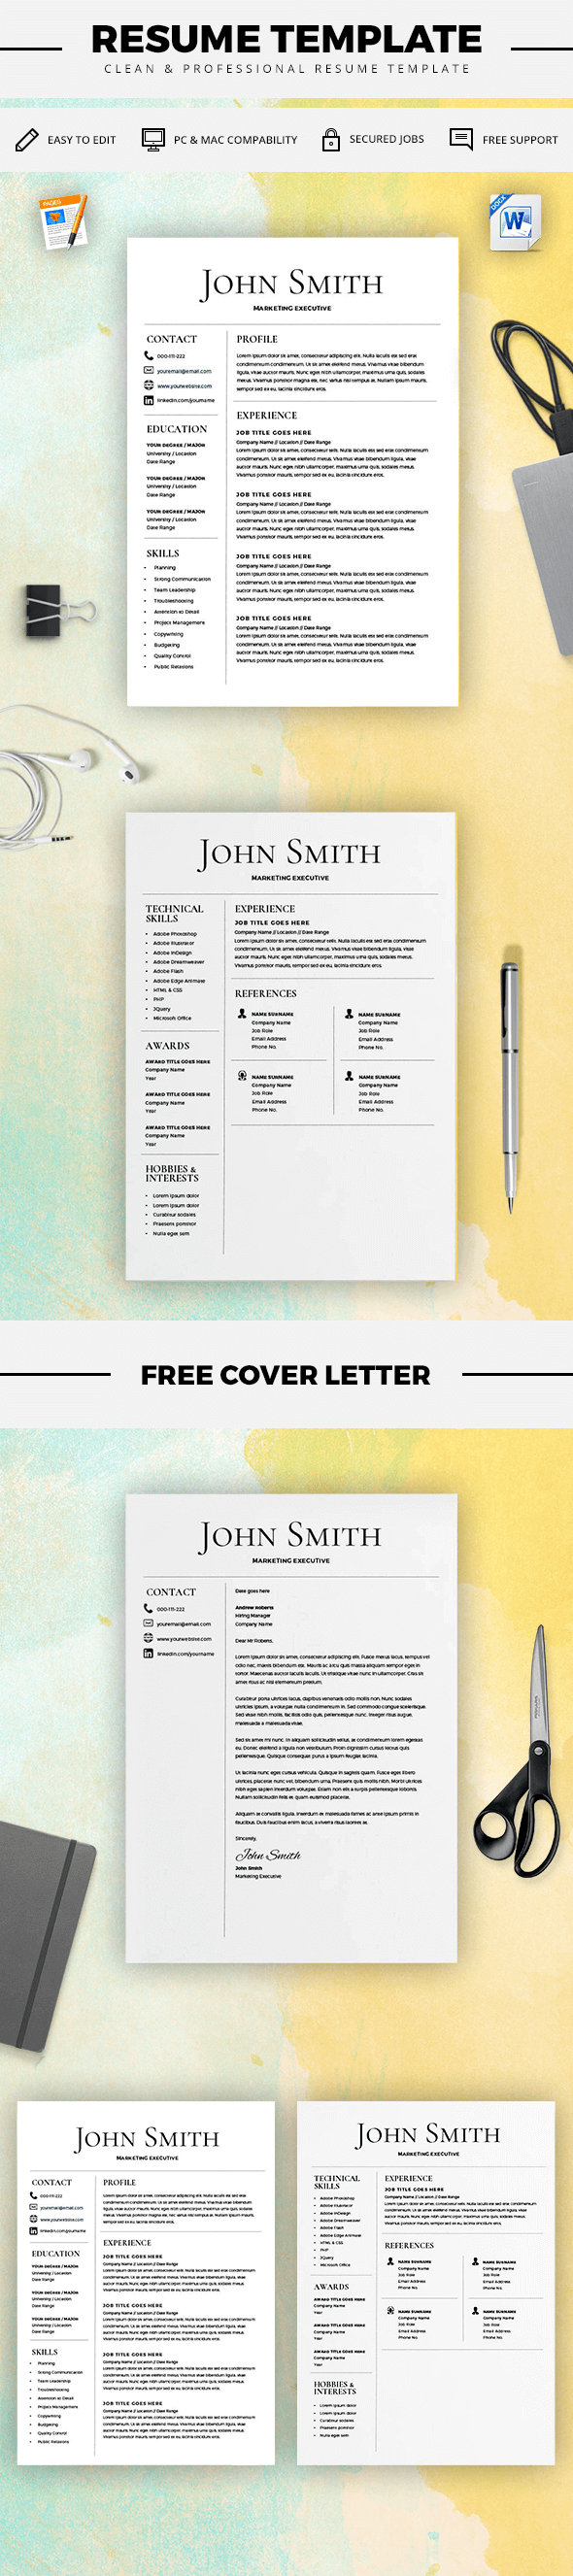 Simple Resume Template  Cv Template  Free Cover Letter